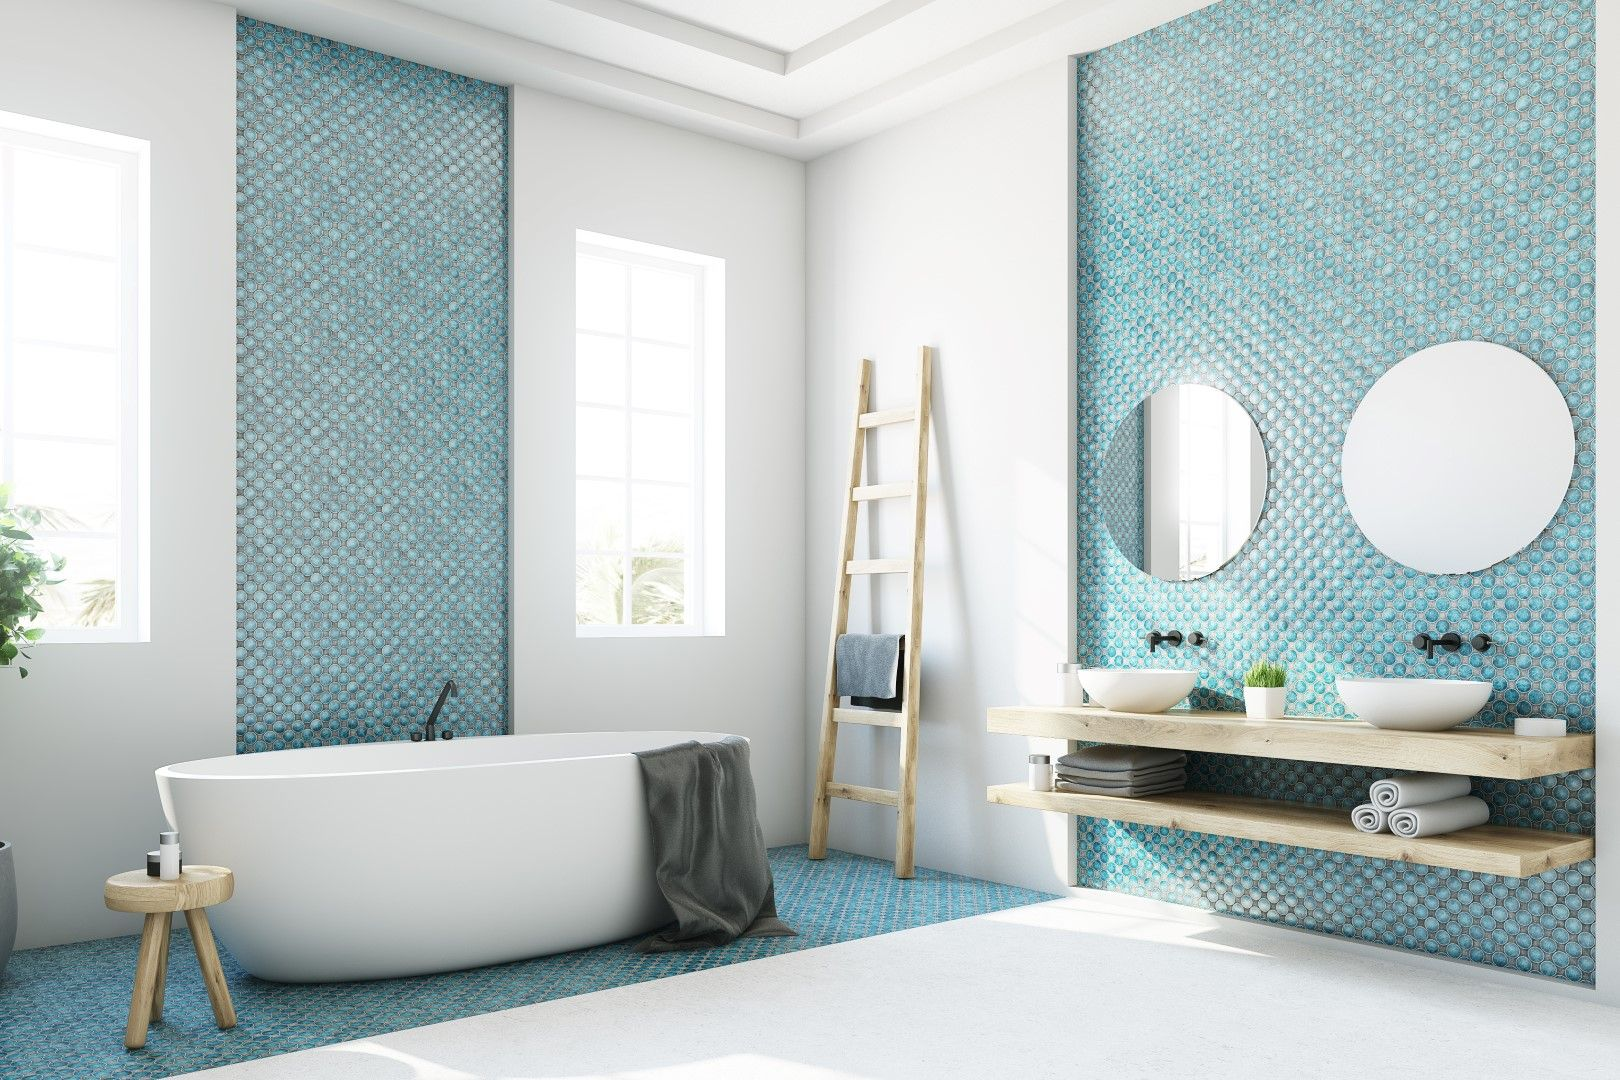 Pleasant The 6 Top Bathroom Tile Trends Of 2018 For The Home Download Free Architecture Designs Scobabritishbridgeorg